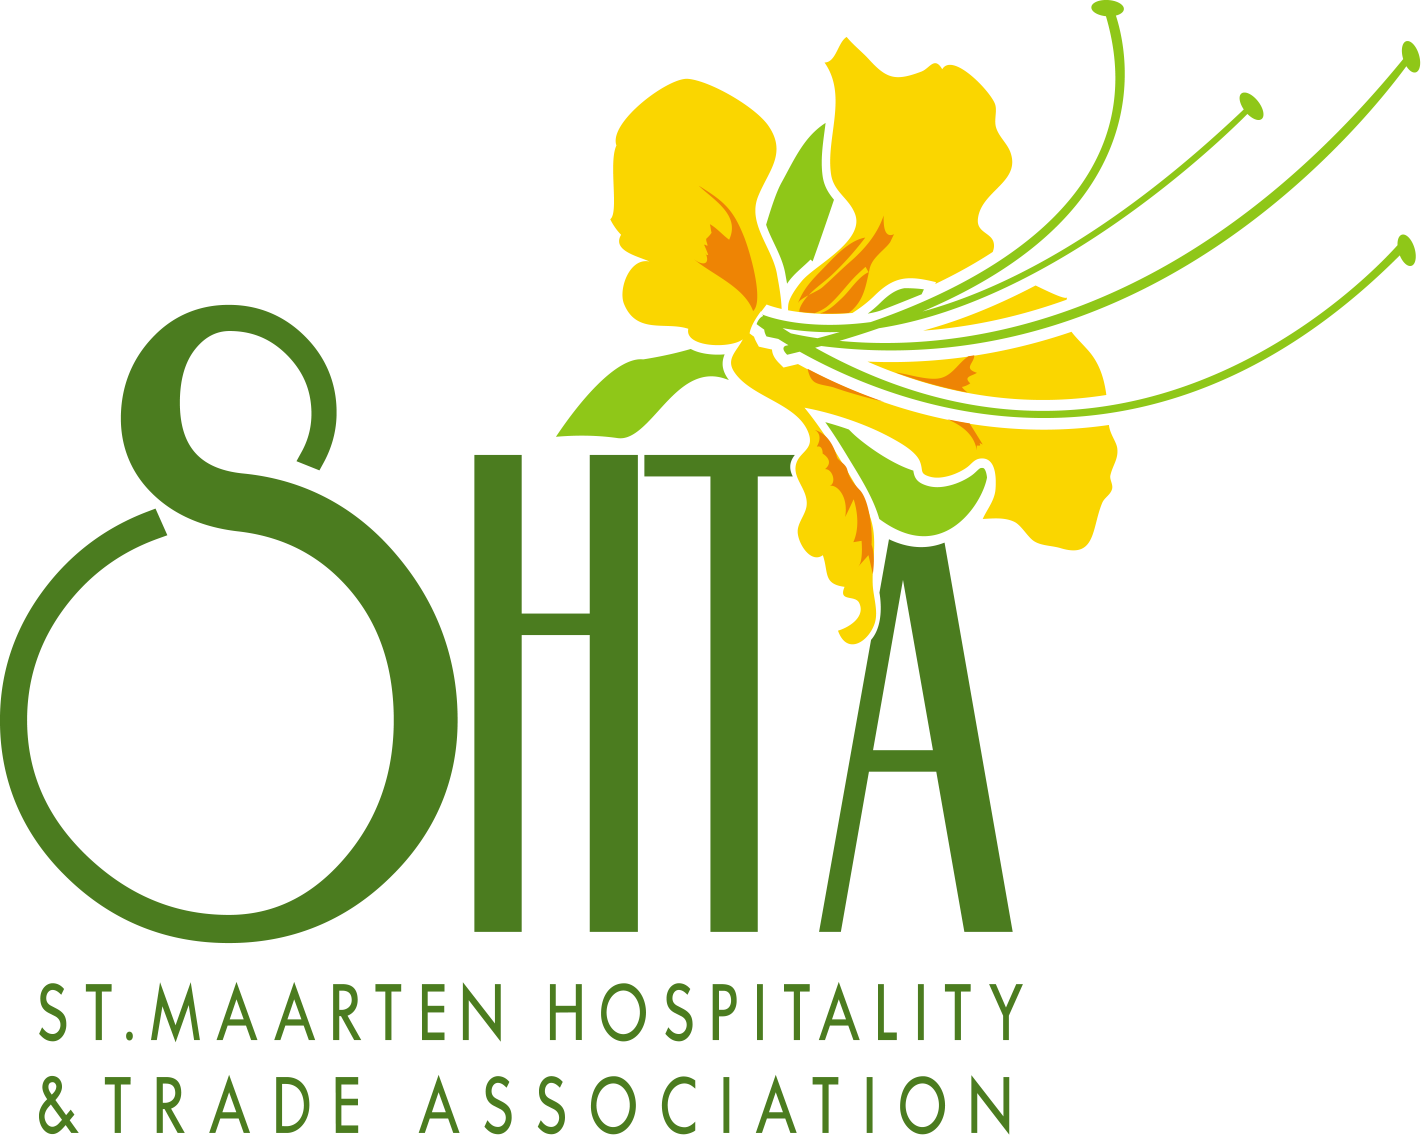 St. Maarten Hospitality and Trade Association